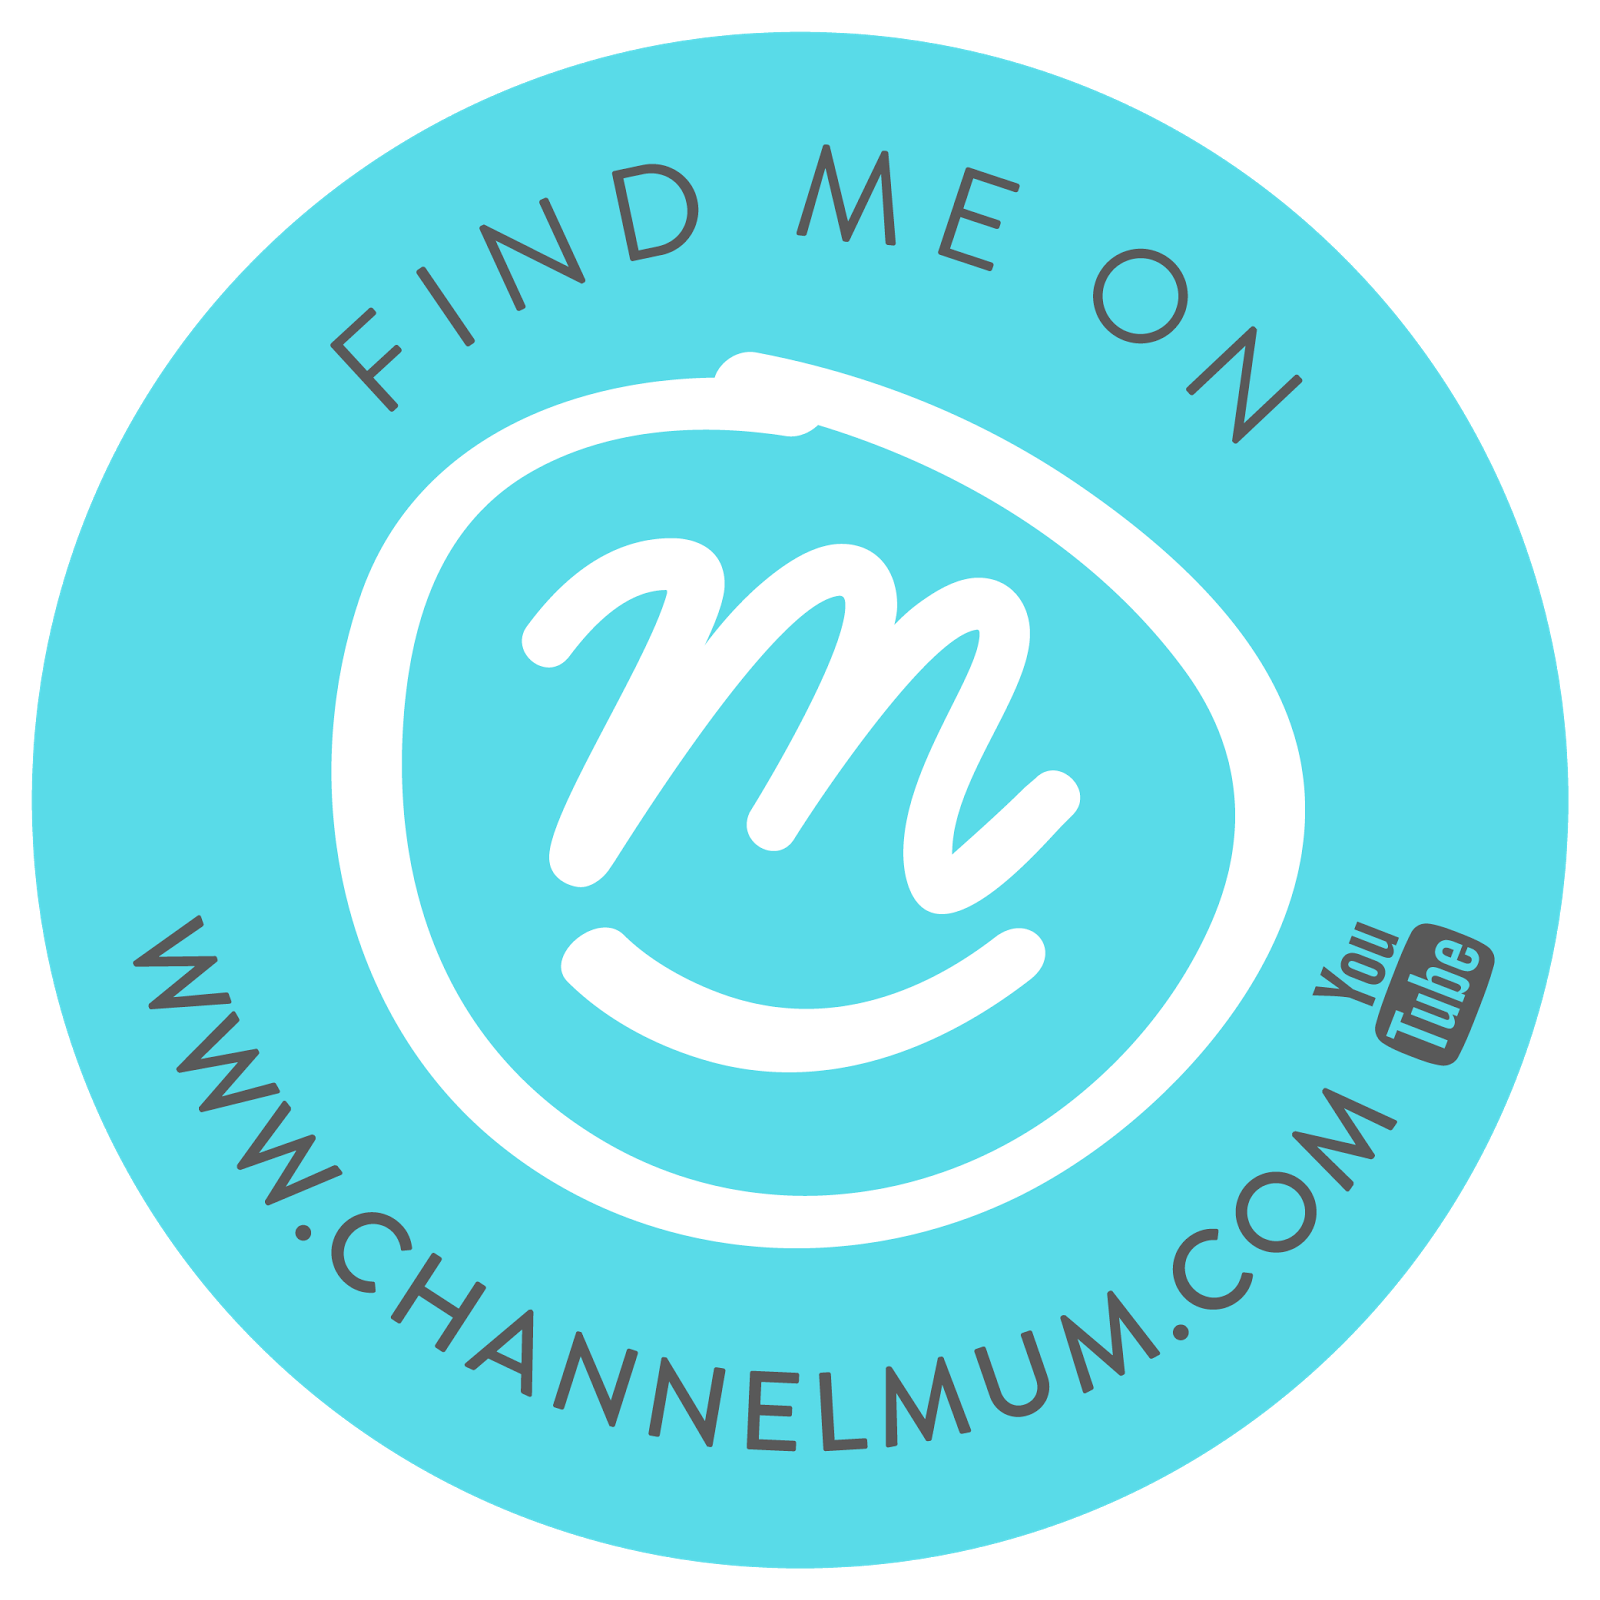 FIND ME ON CHANNEL MUM